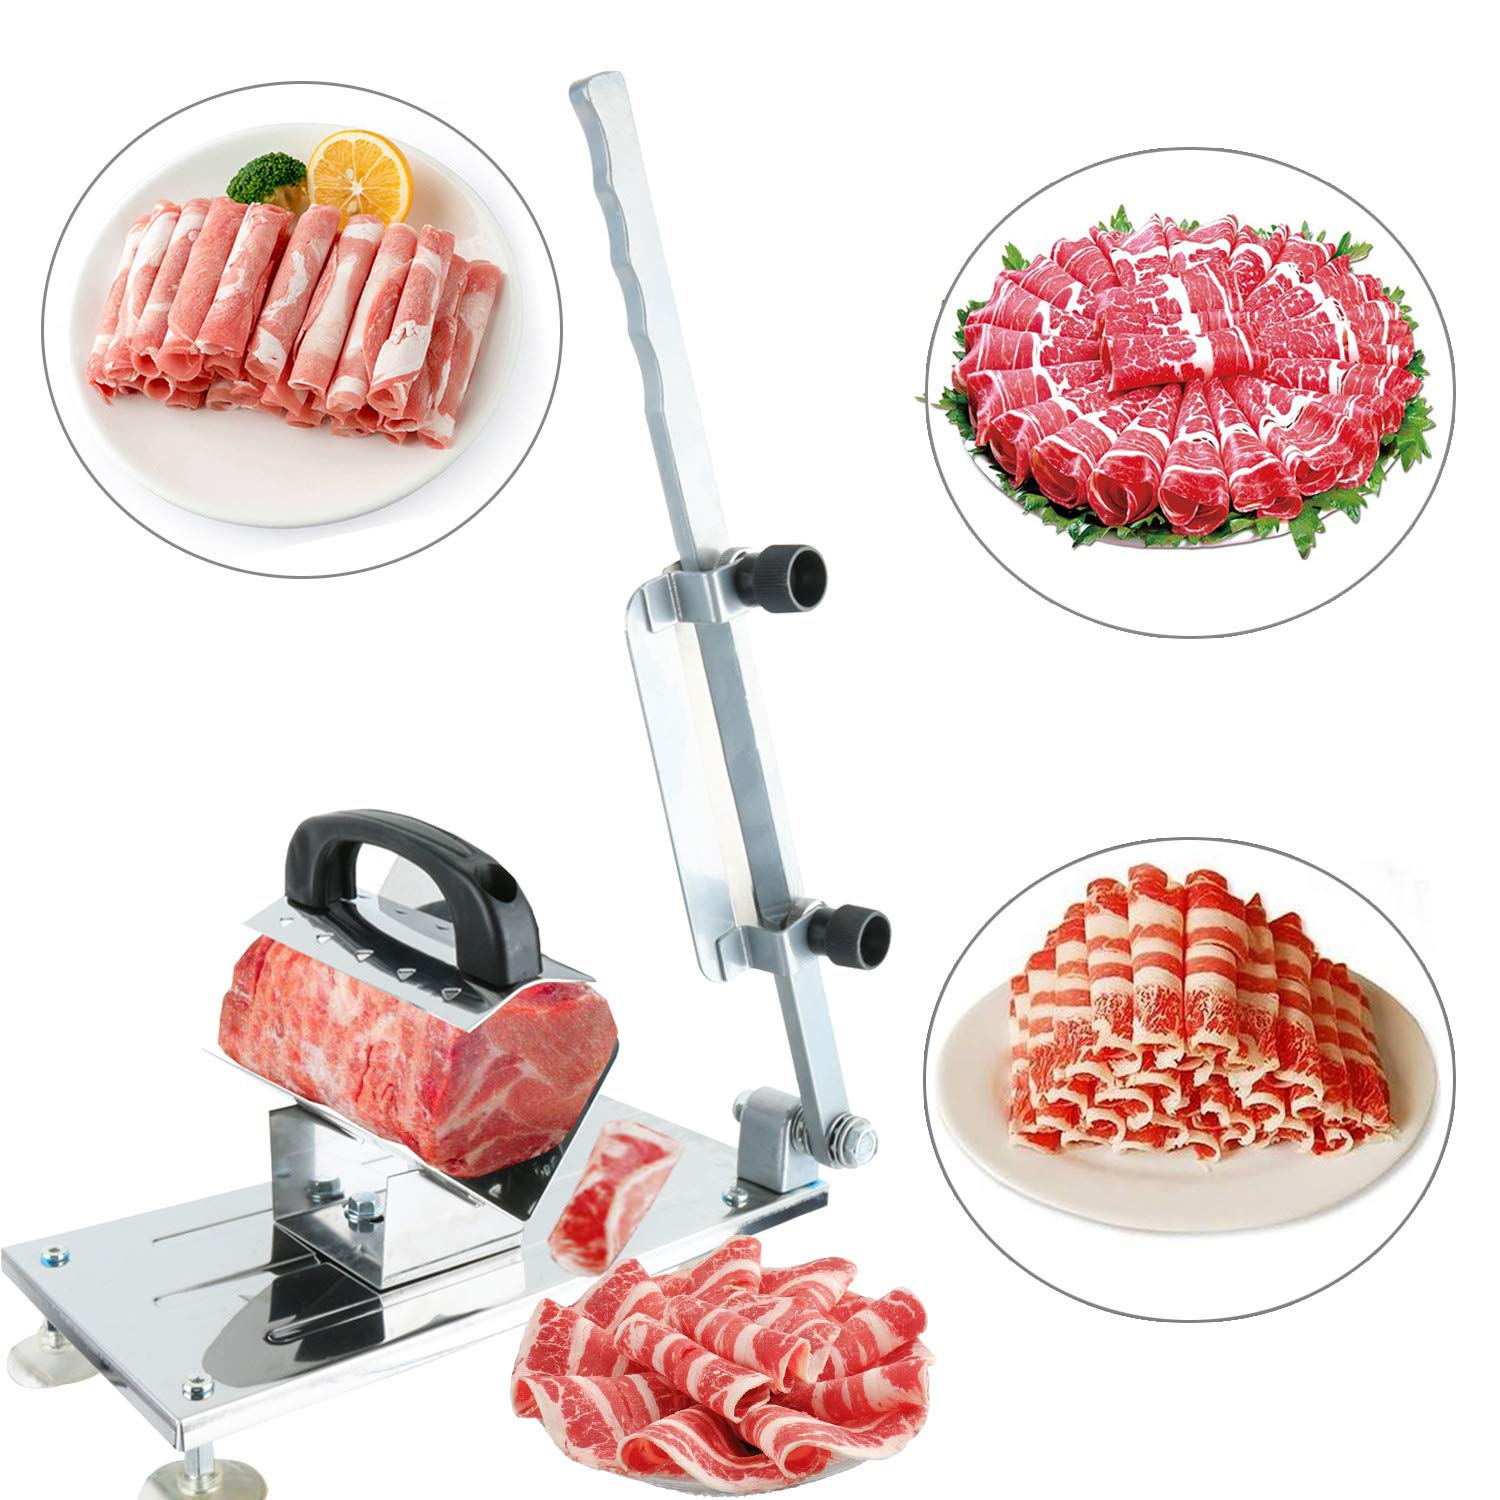 YaeGarden Frozen Meat Slicer Stainless Meat Cutter Meat Food Slicer Slicing Machine Food Vegetable Cutter Meat Cleavers Home Kitchen